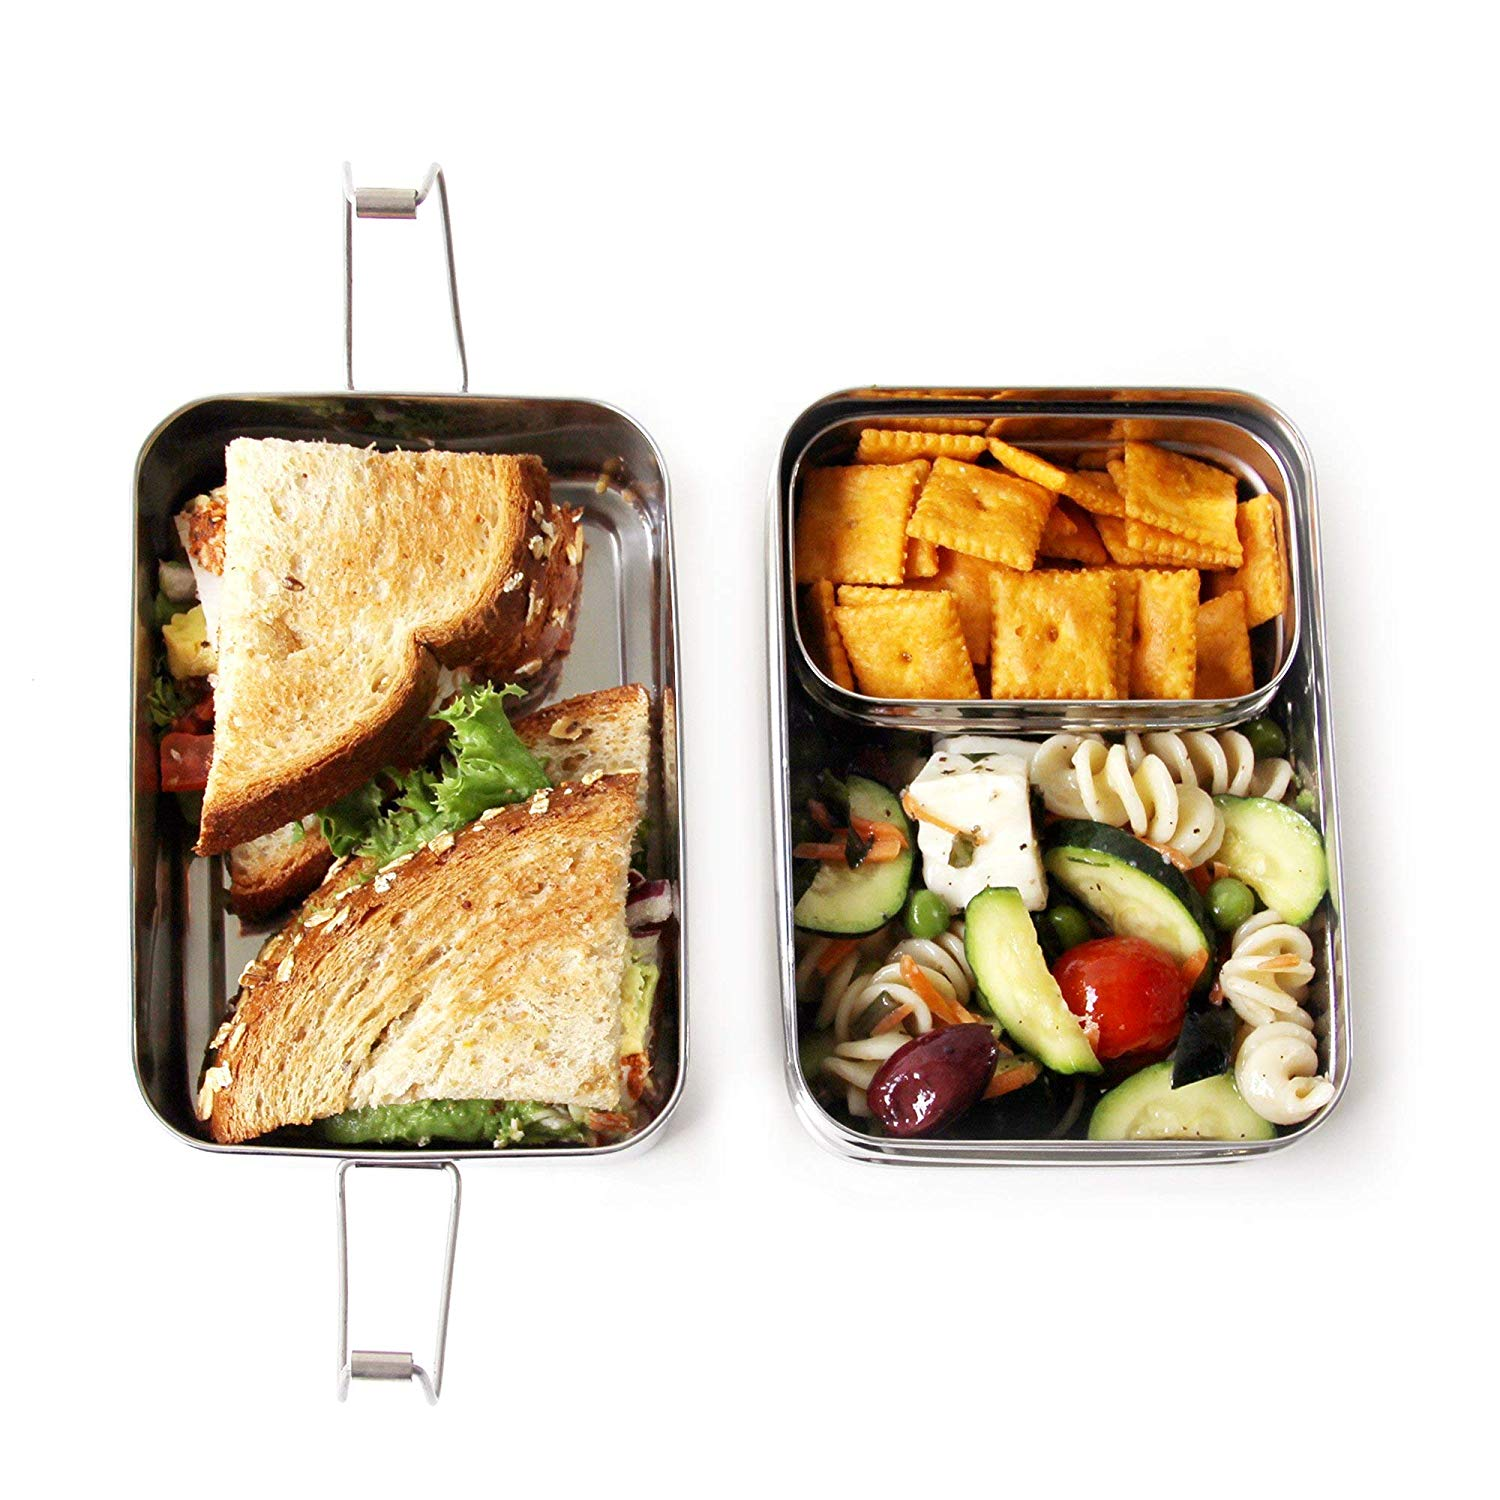 Metal meal containers.